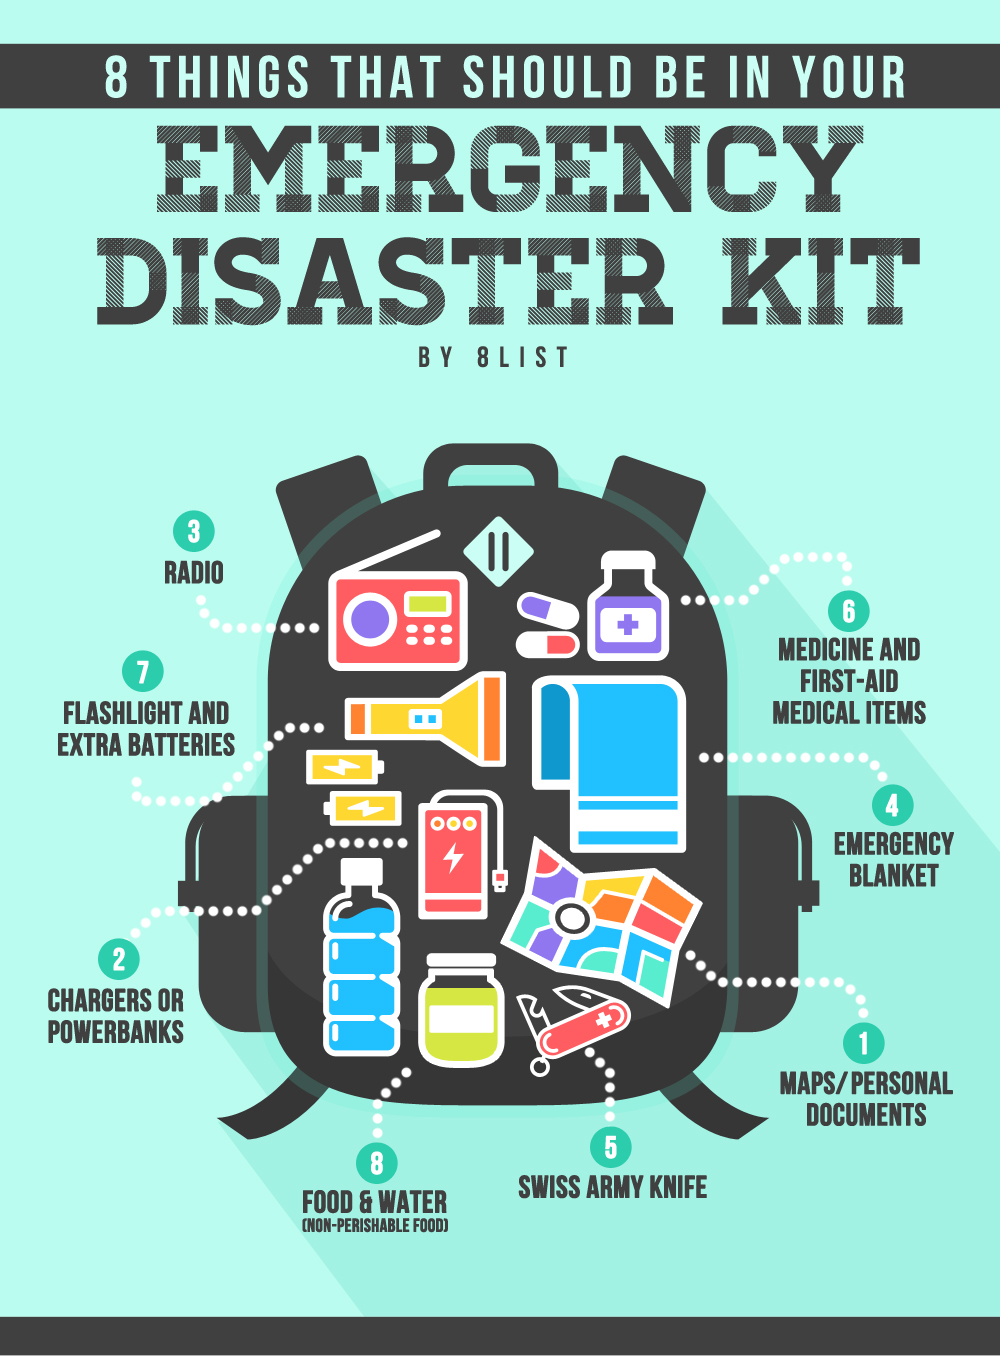 8 Things that Should be in Your Emergency Disaster Kit